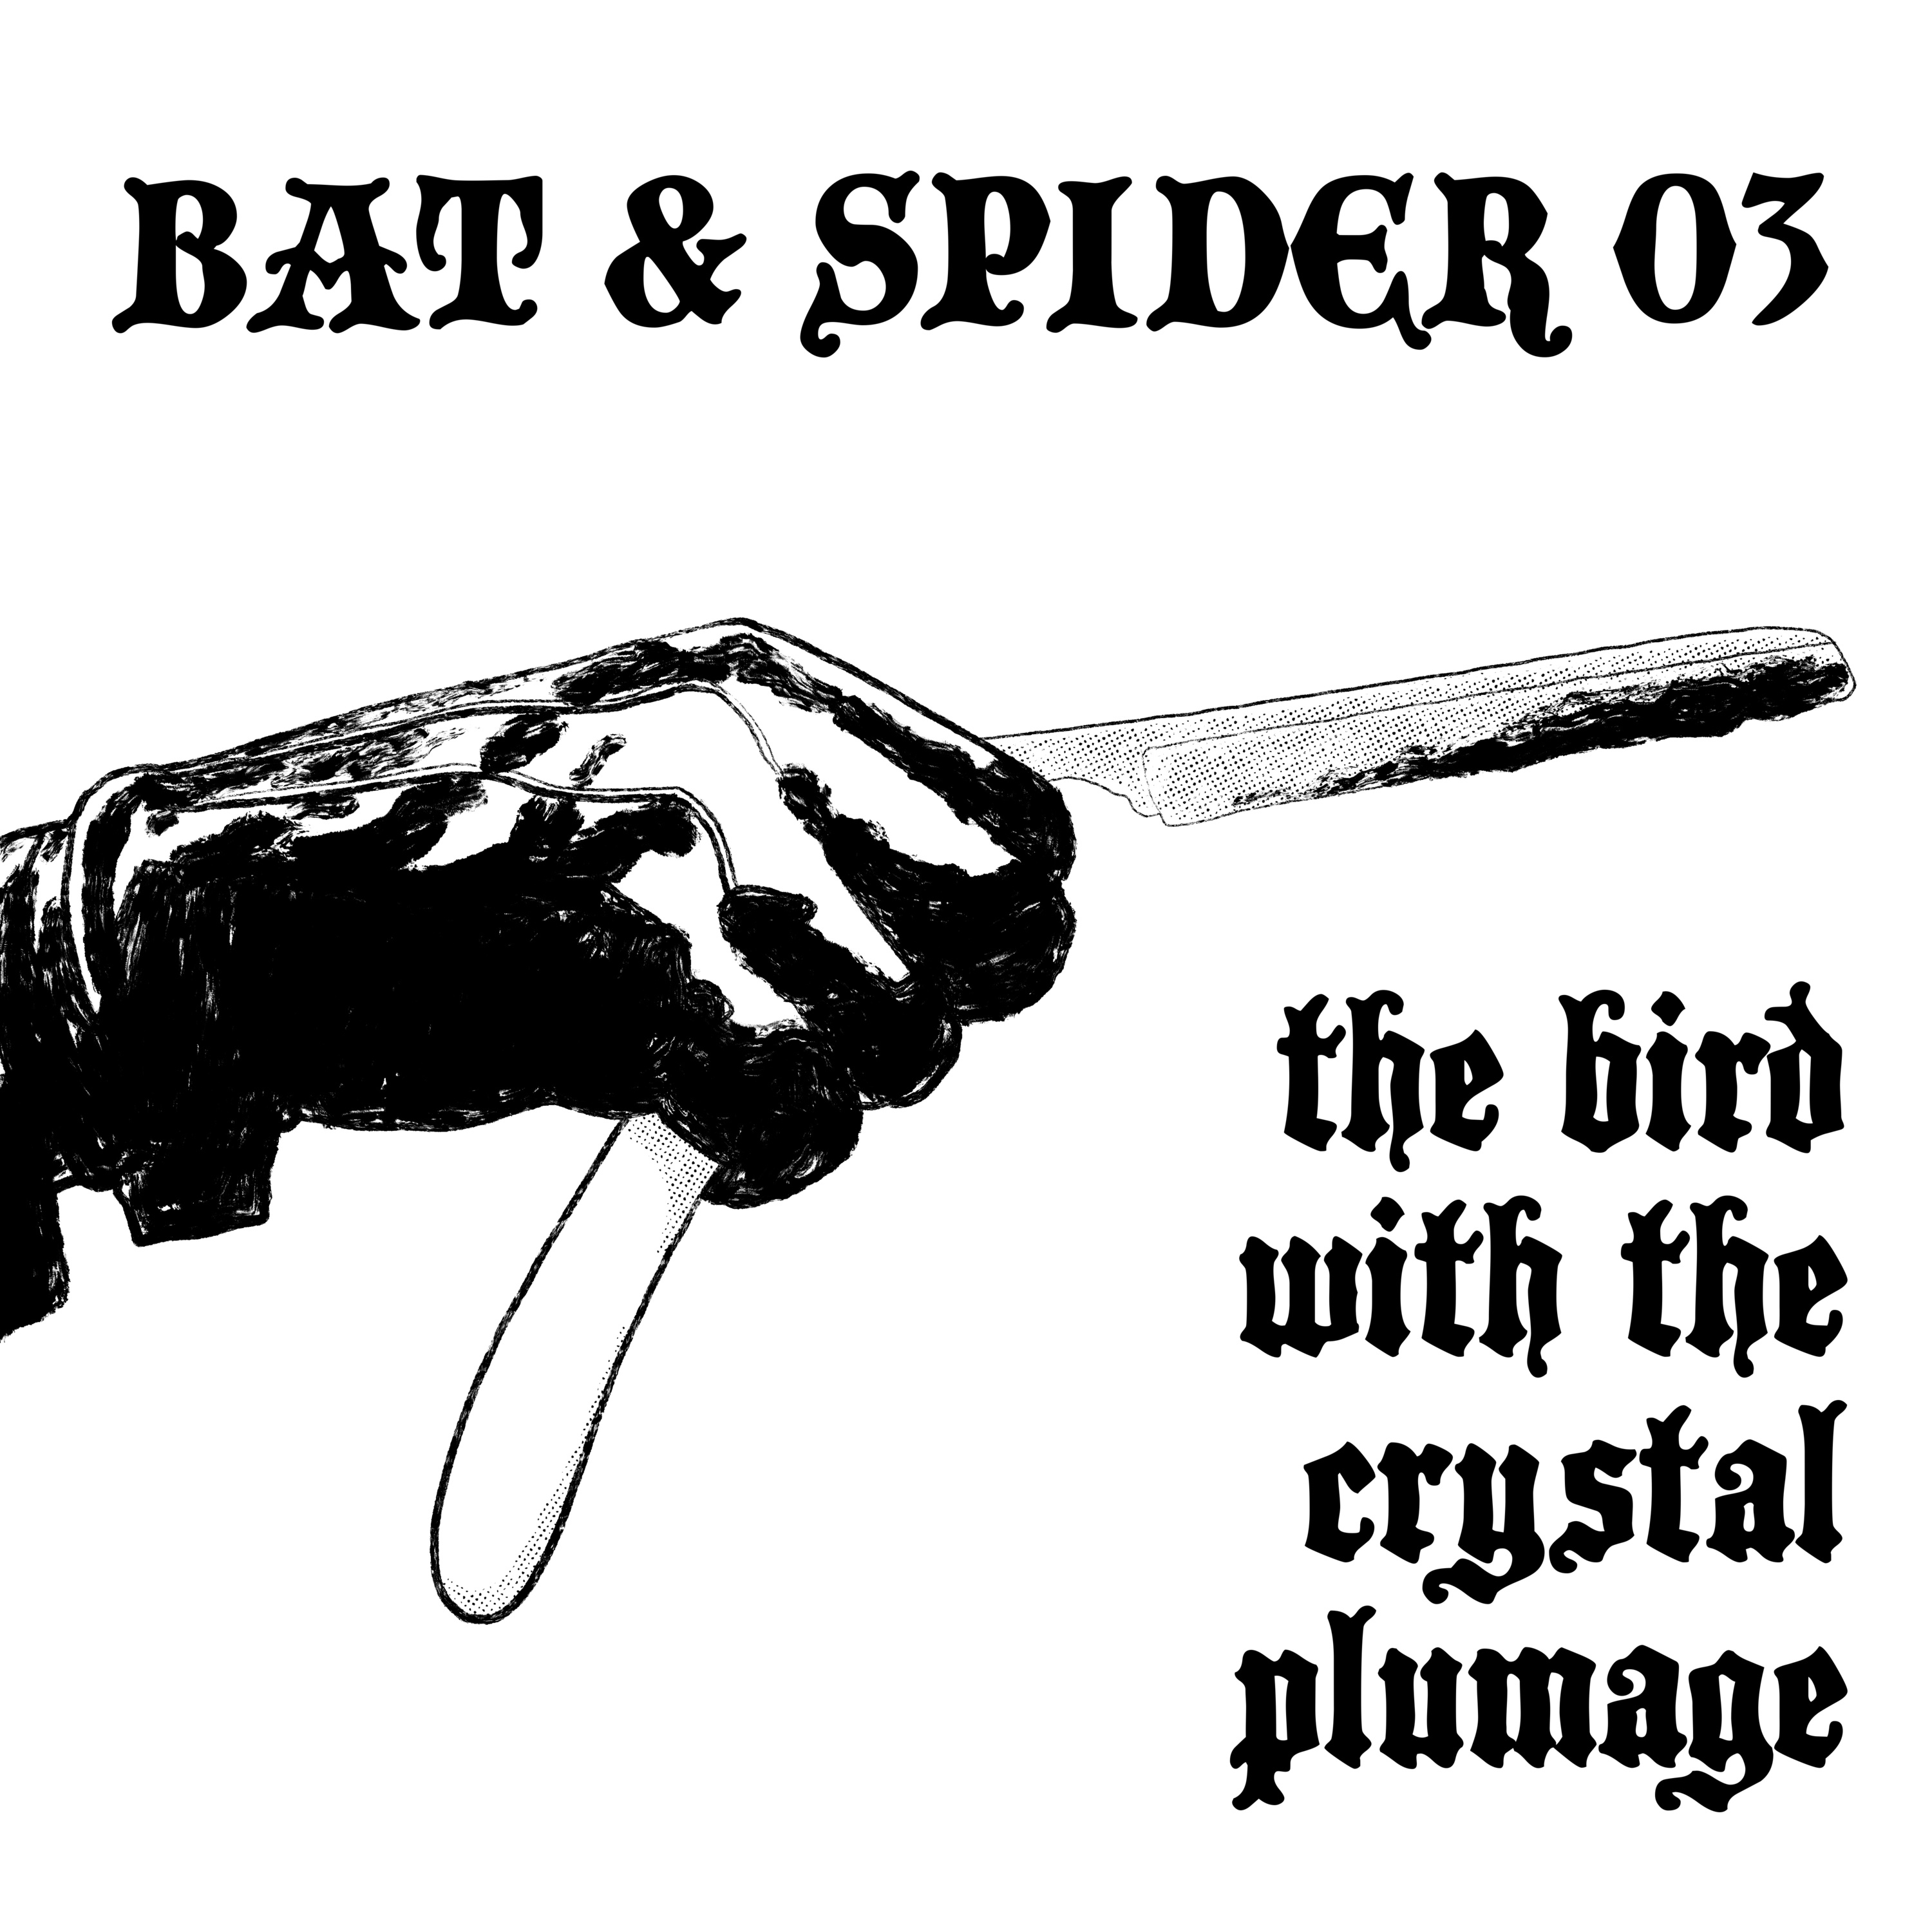 03 THE BIRD WITH THE CRYSTAL PLUMAGE